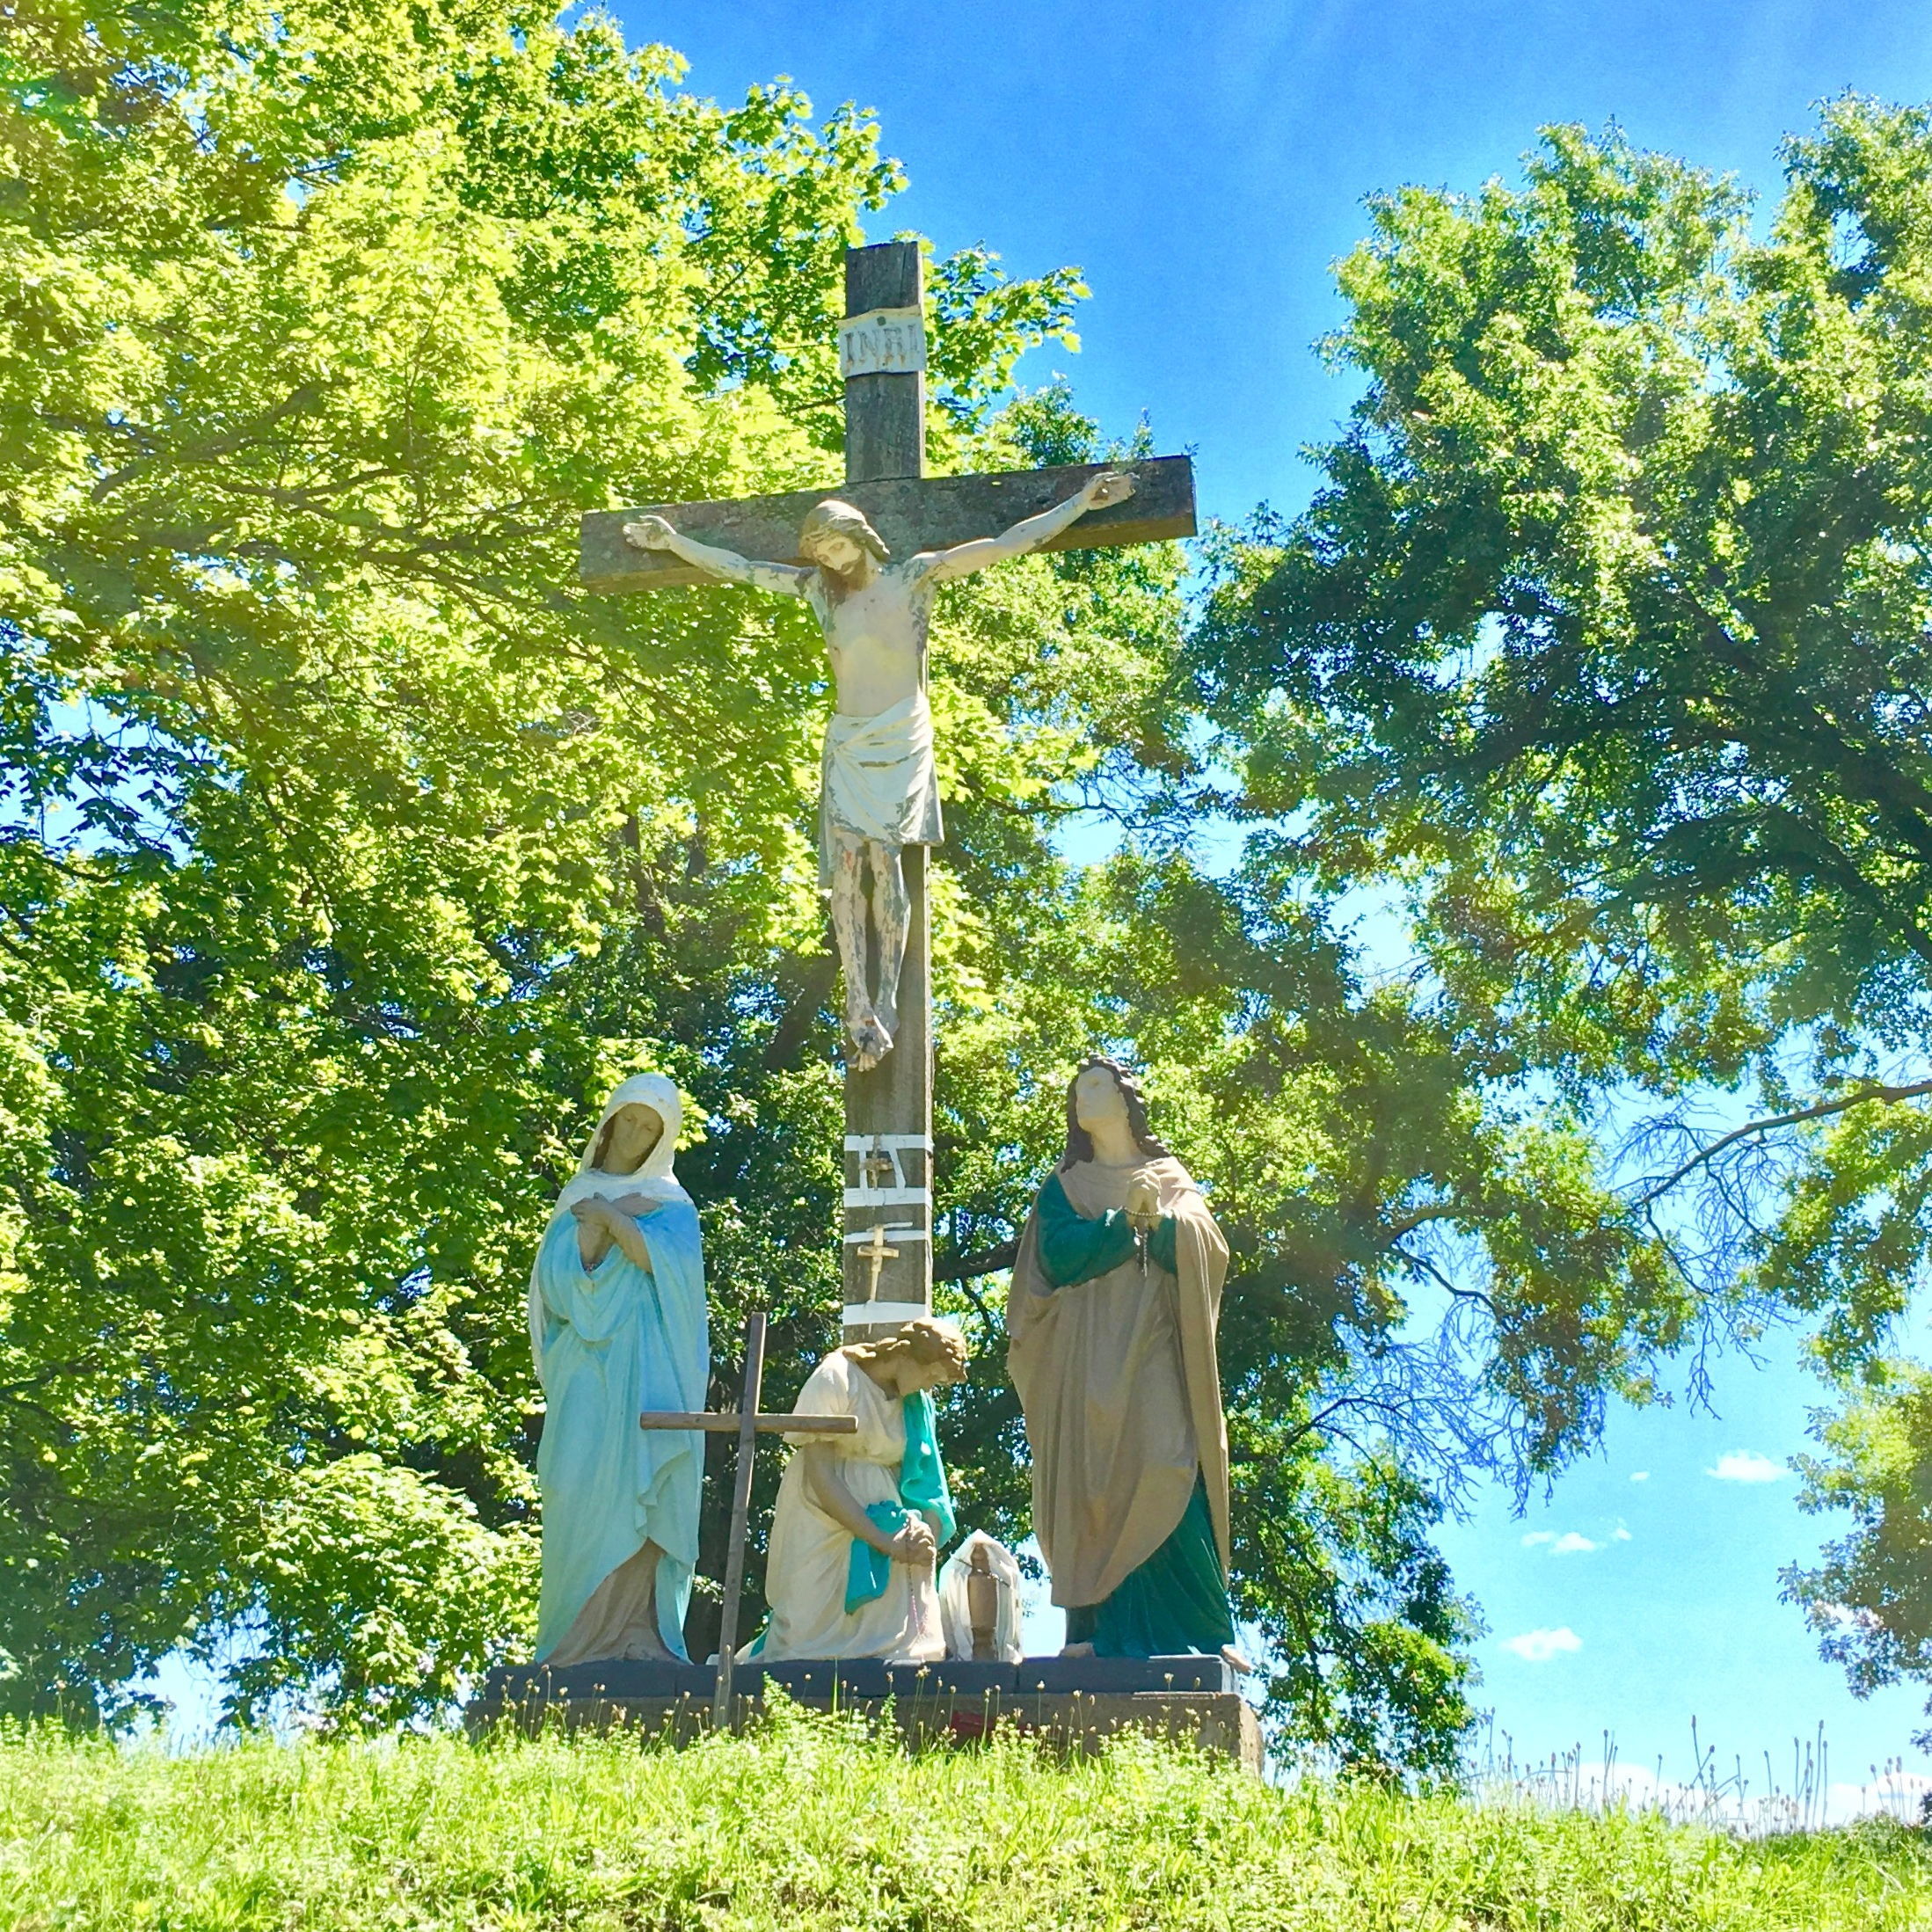 - For over 130 years, the Shrine was under the ownership and direction of the Society of Jesus (Jesuits), but is now owned and operated by the Friends of Our Lady of Martyrs Shrine, a board of volunteers dedicated to maintaining both the sanctity and viability of these holy grounds.